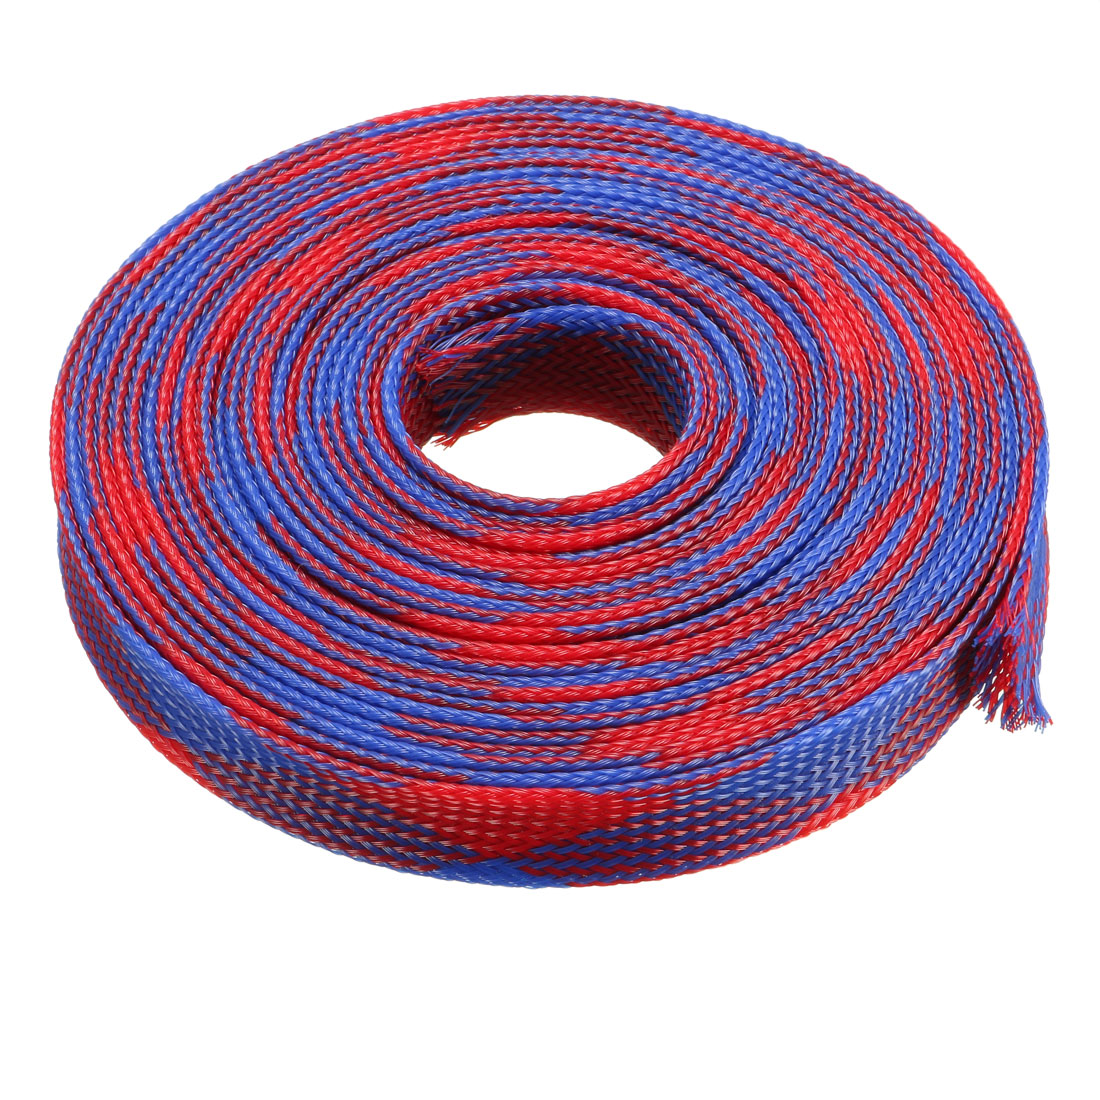 12mm Dia Tight Braided PET Expandable Sleeving Cable Wrap Sheath Blue Red 16Ft